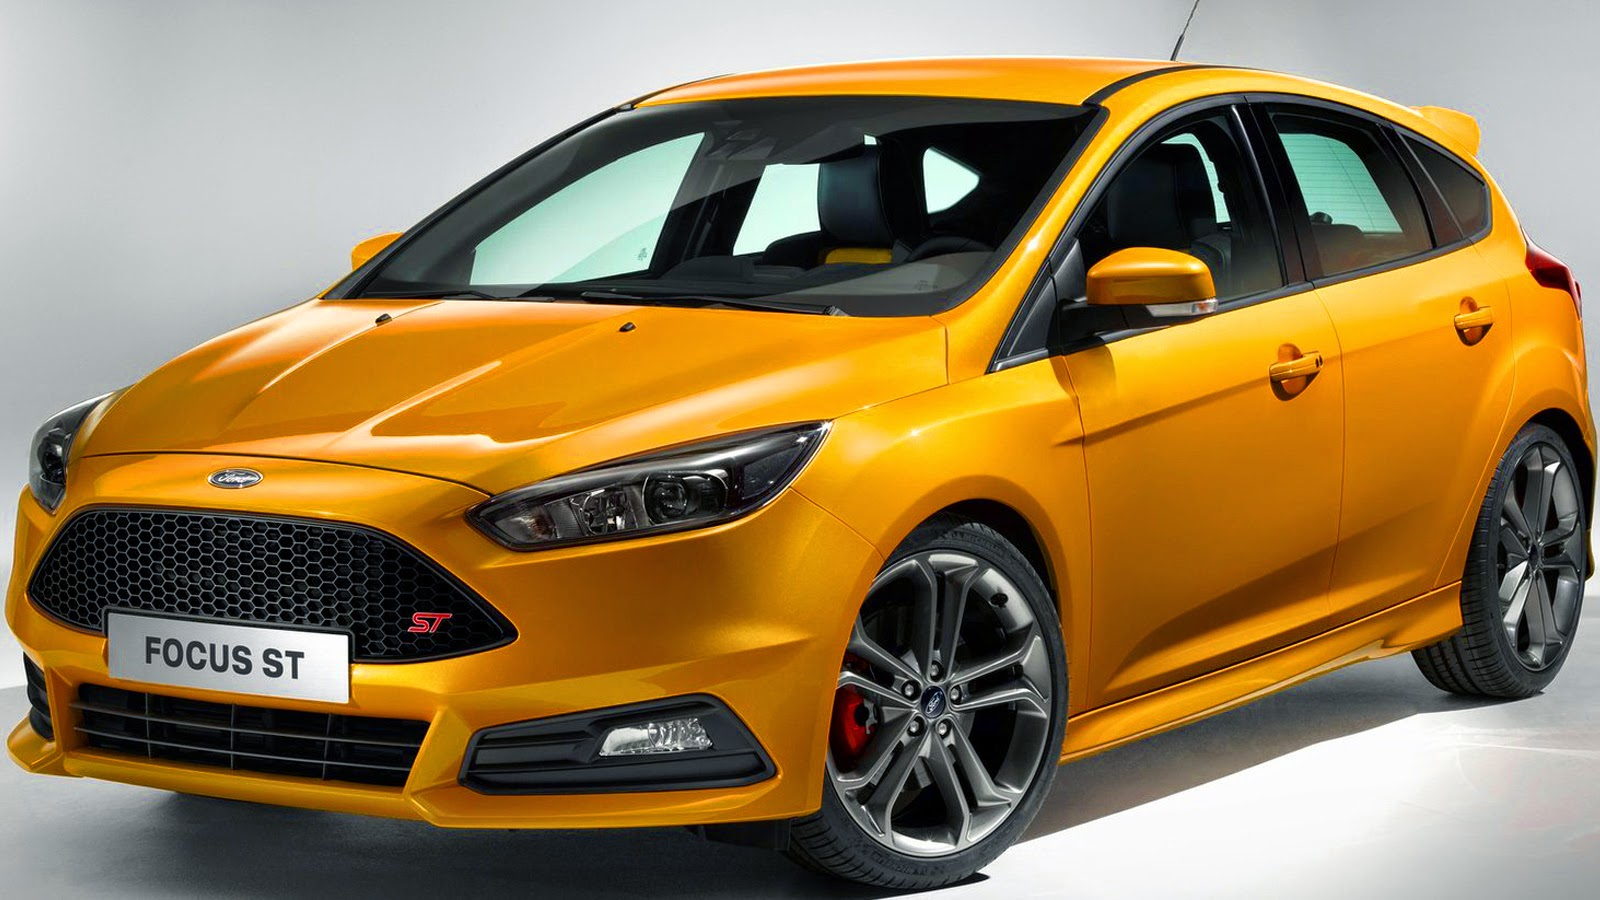 ford focus st 2015 2 0 tdci turbo diesel 185 cv 2 0 ecoboost turbo 250 cv carwp. Black Bedroom Furniture Sets. Home Design Ideas